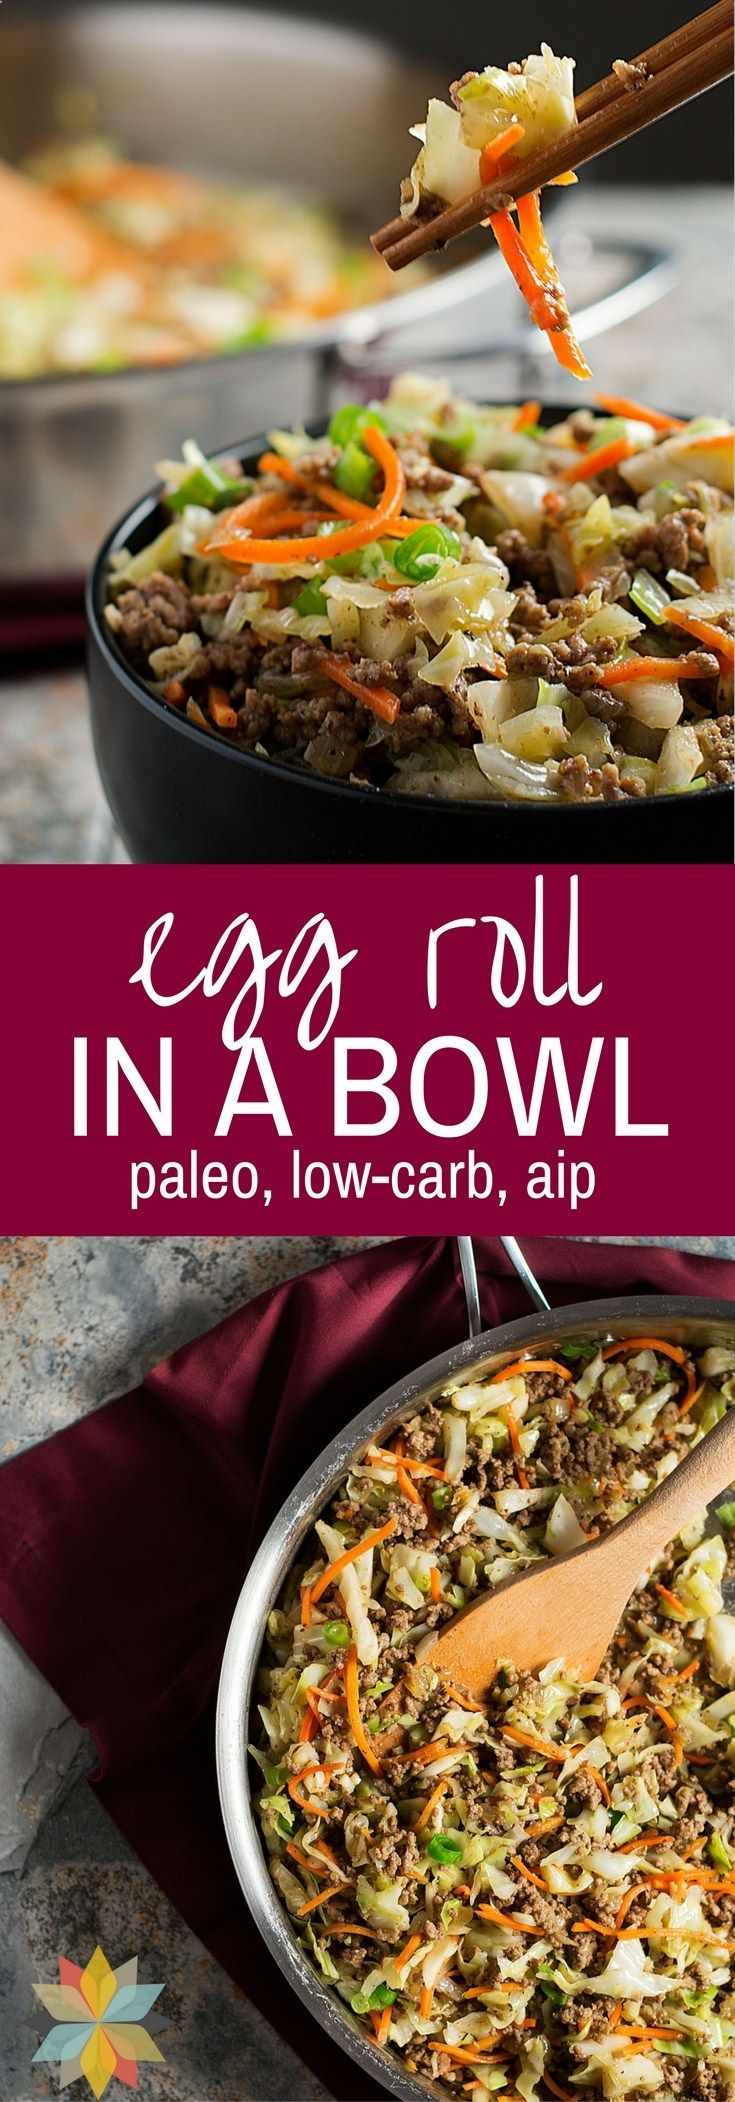 This Egg Roll in a Bowl has all of the great flavor of Egg Rolls, but its an Easy One Pan Meal without the grain wrapper!